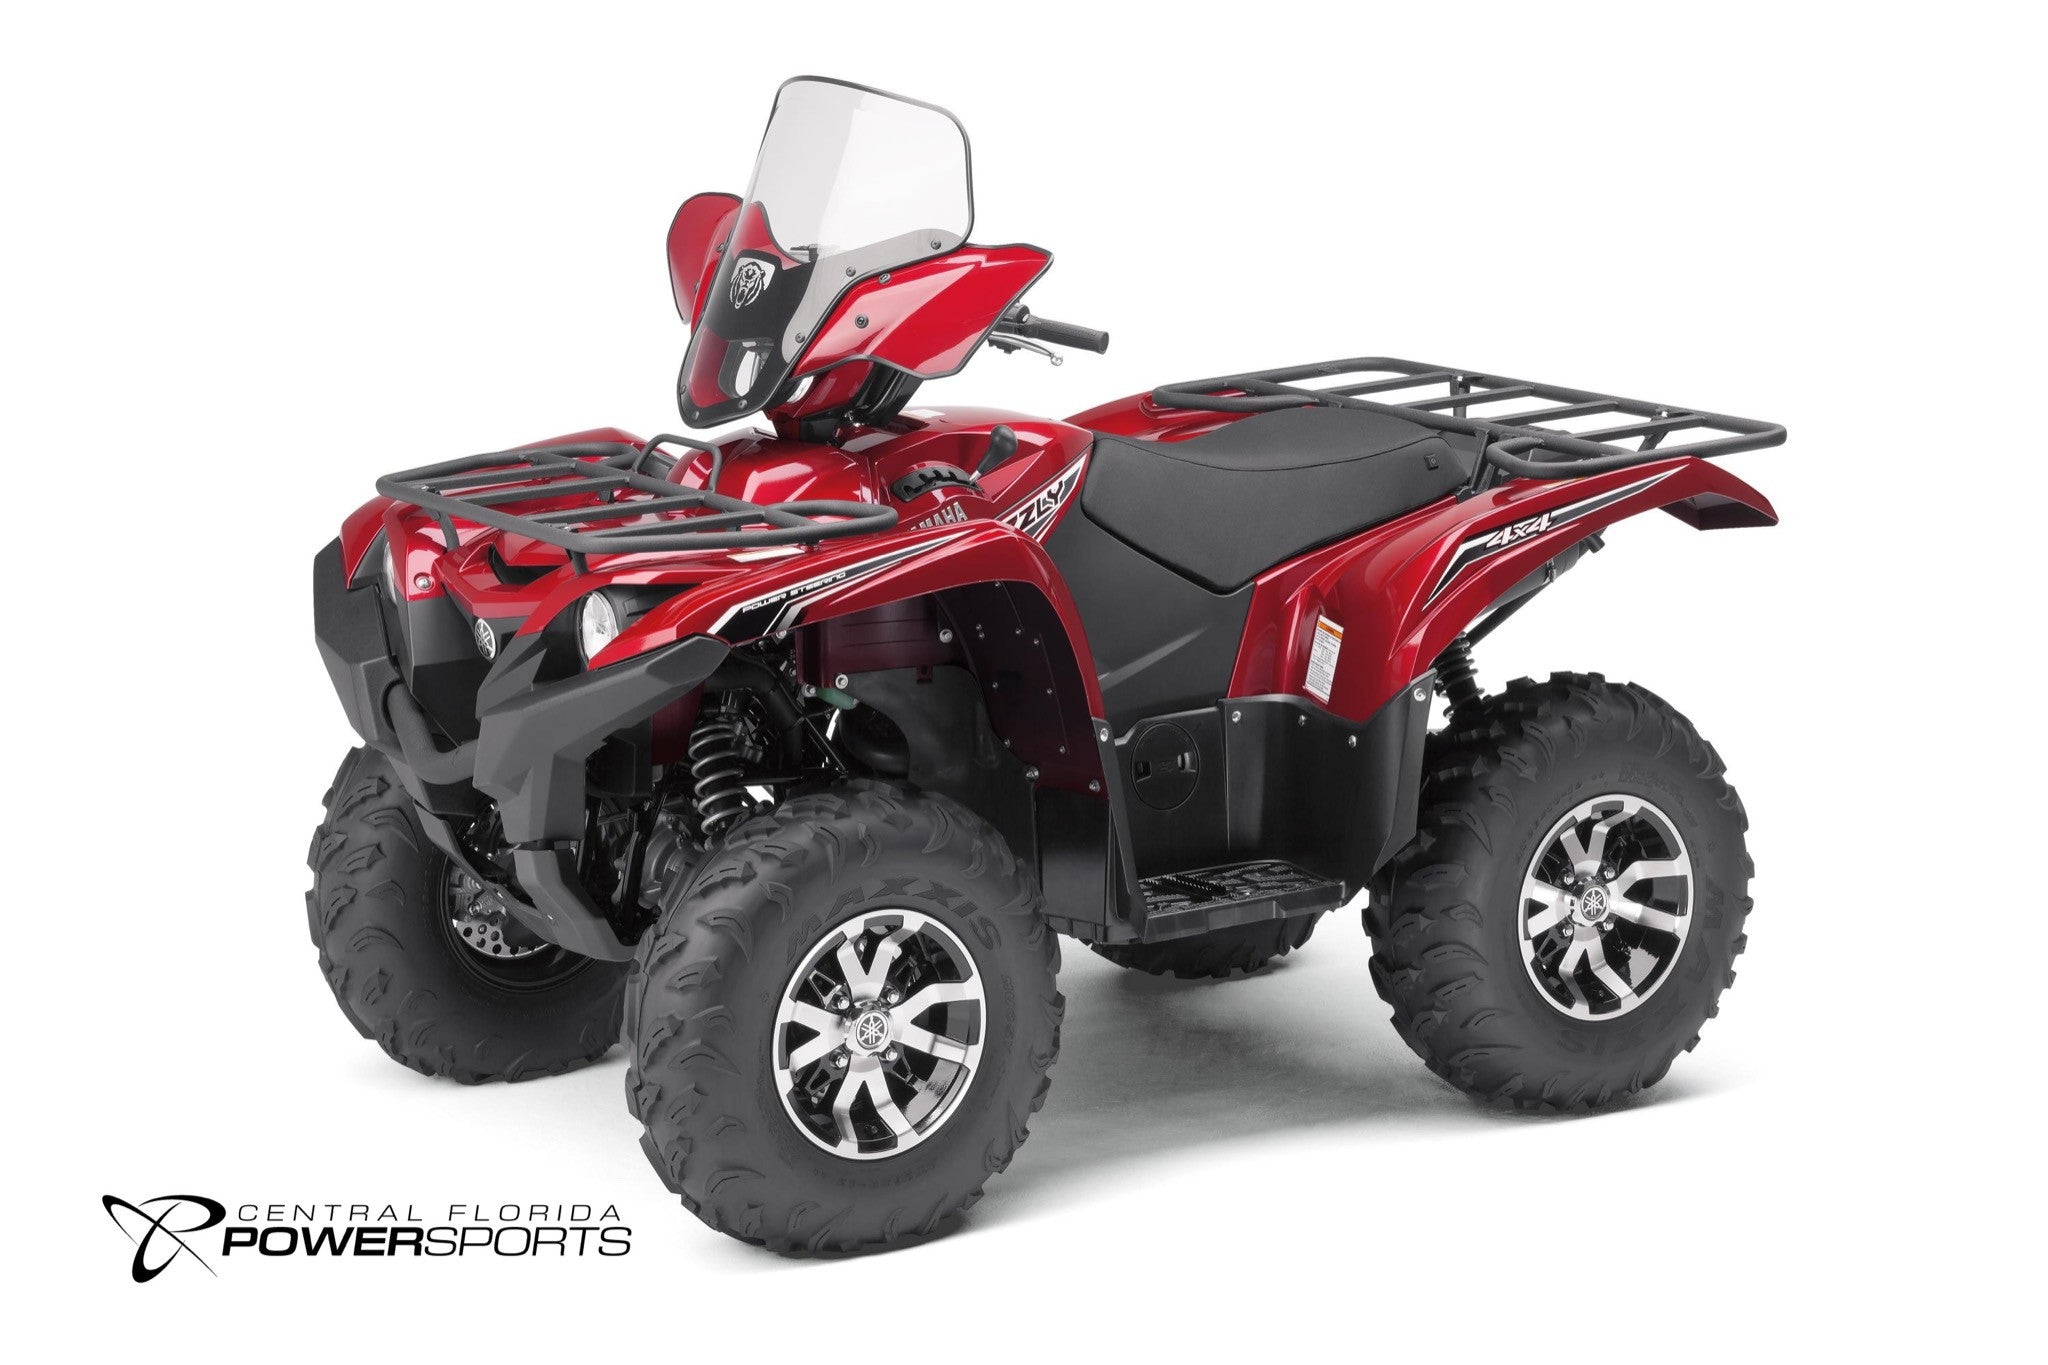 2017 Yamaha Grizzly 700 EPS Limited Edition LE 4WD ATV - Central ...